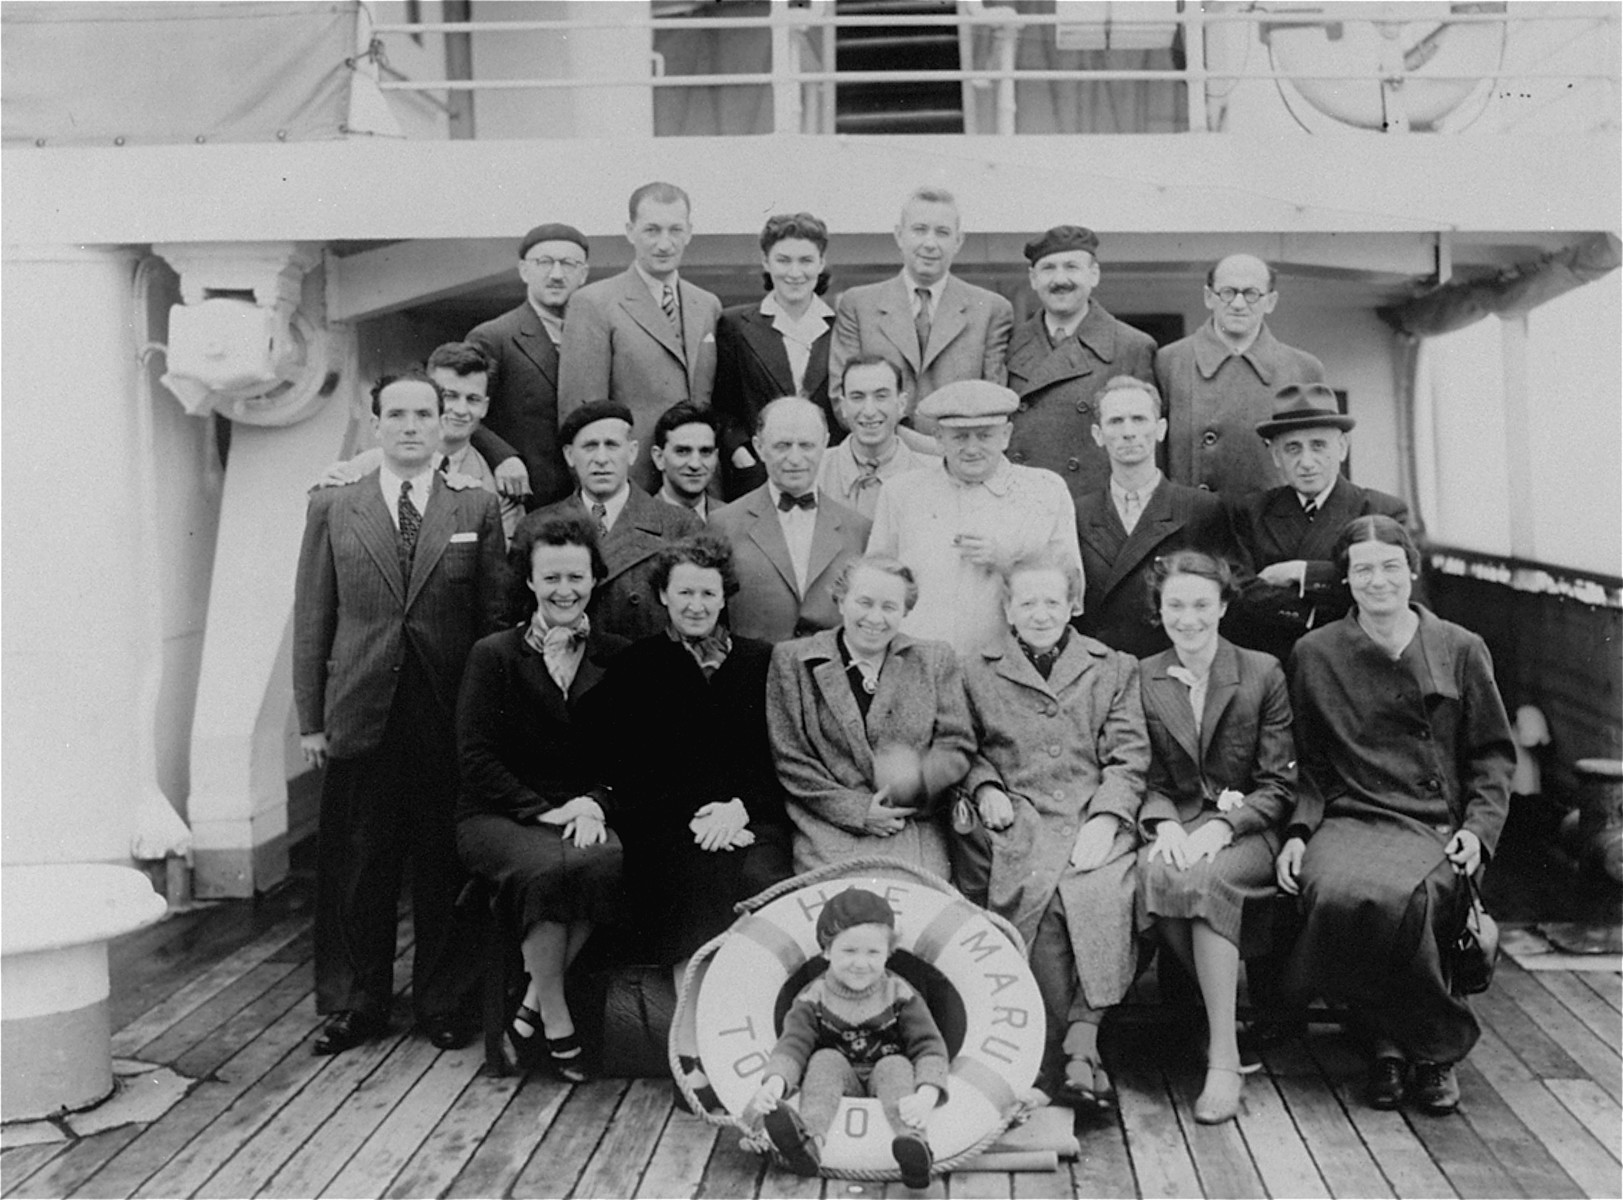 Polish-Jewish refugees aboard the Hae Maru en route to Vancouver, Canada from Japan.  These refugees escaped Europe with Japanese transit visas issued by Chiune Sugihara in Kaunas, Lithuania.